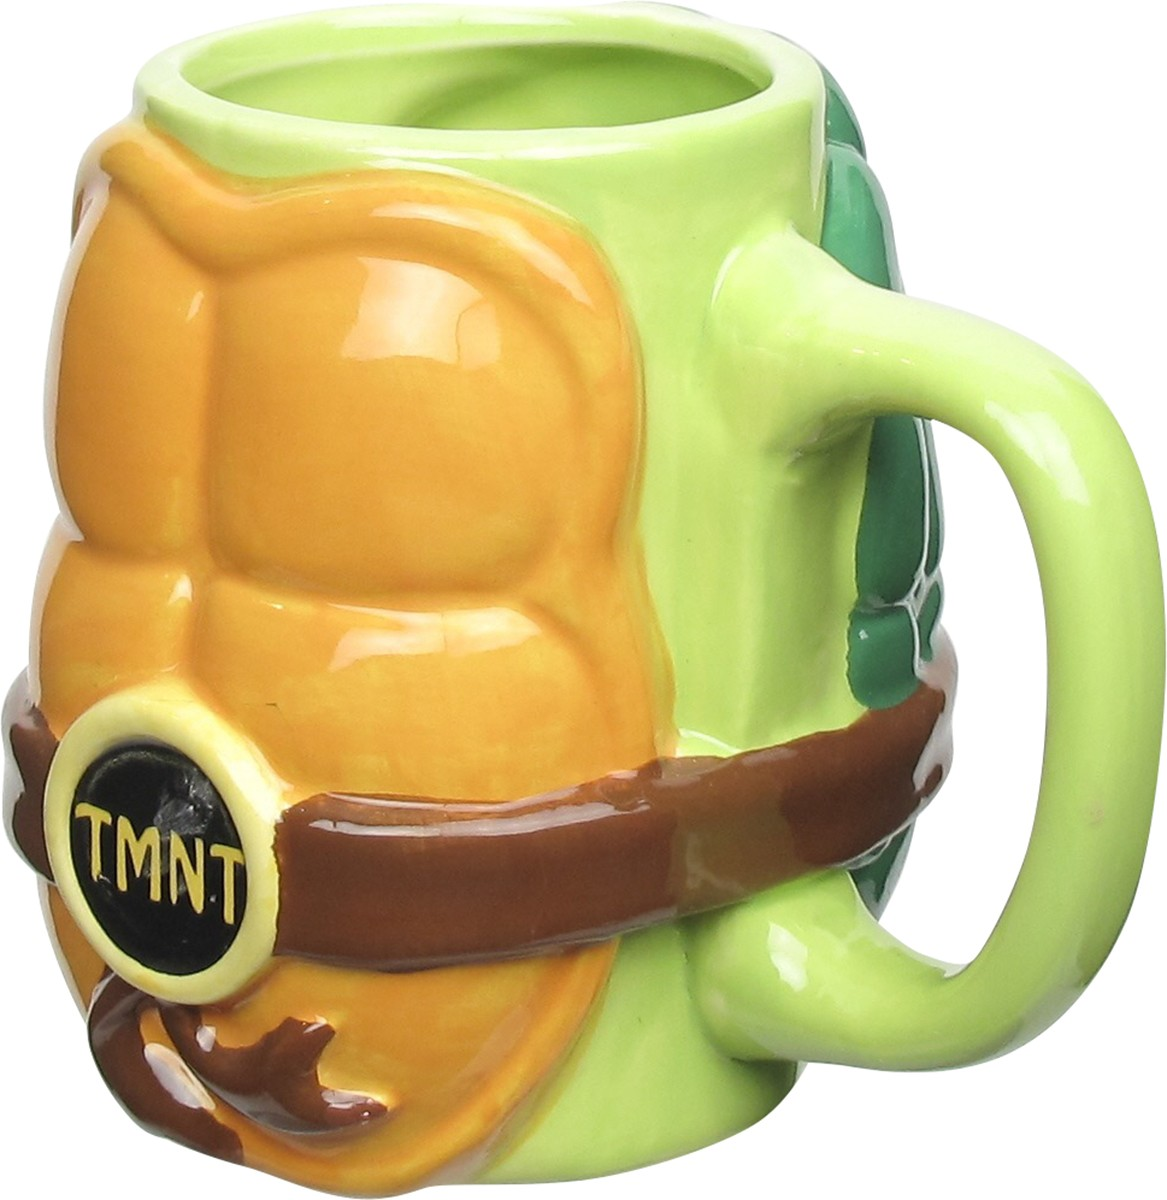 Ninja Mugs Ninja Turtles Body Sculpted Mug